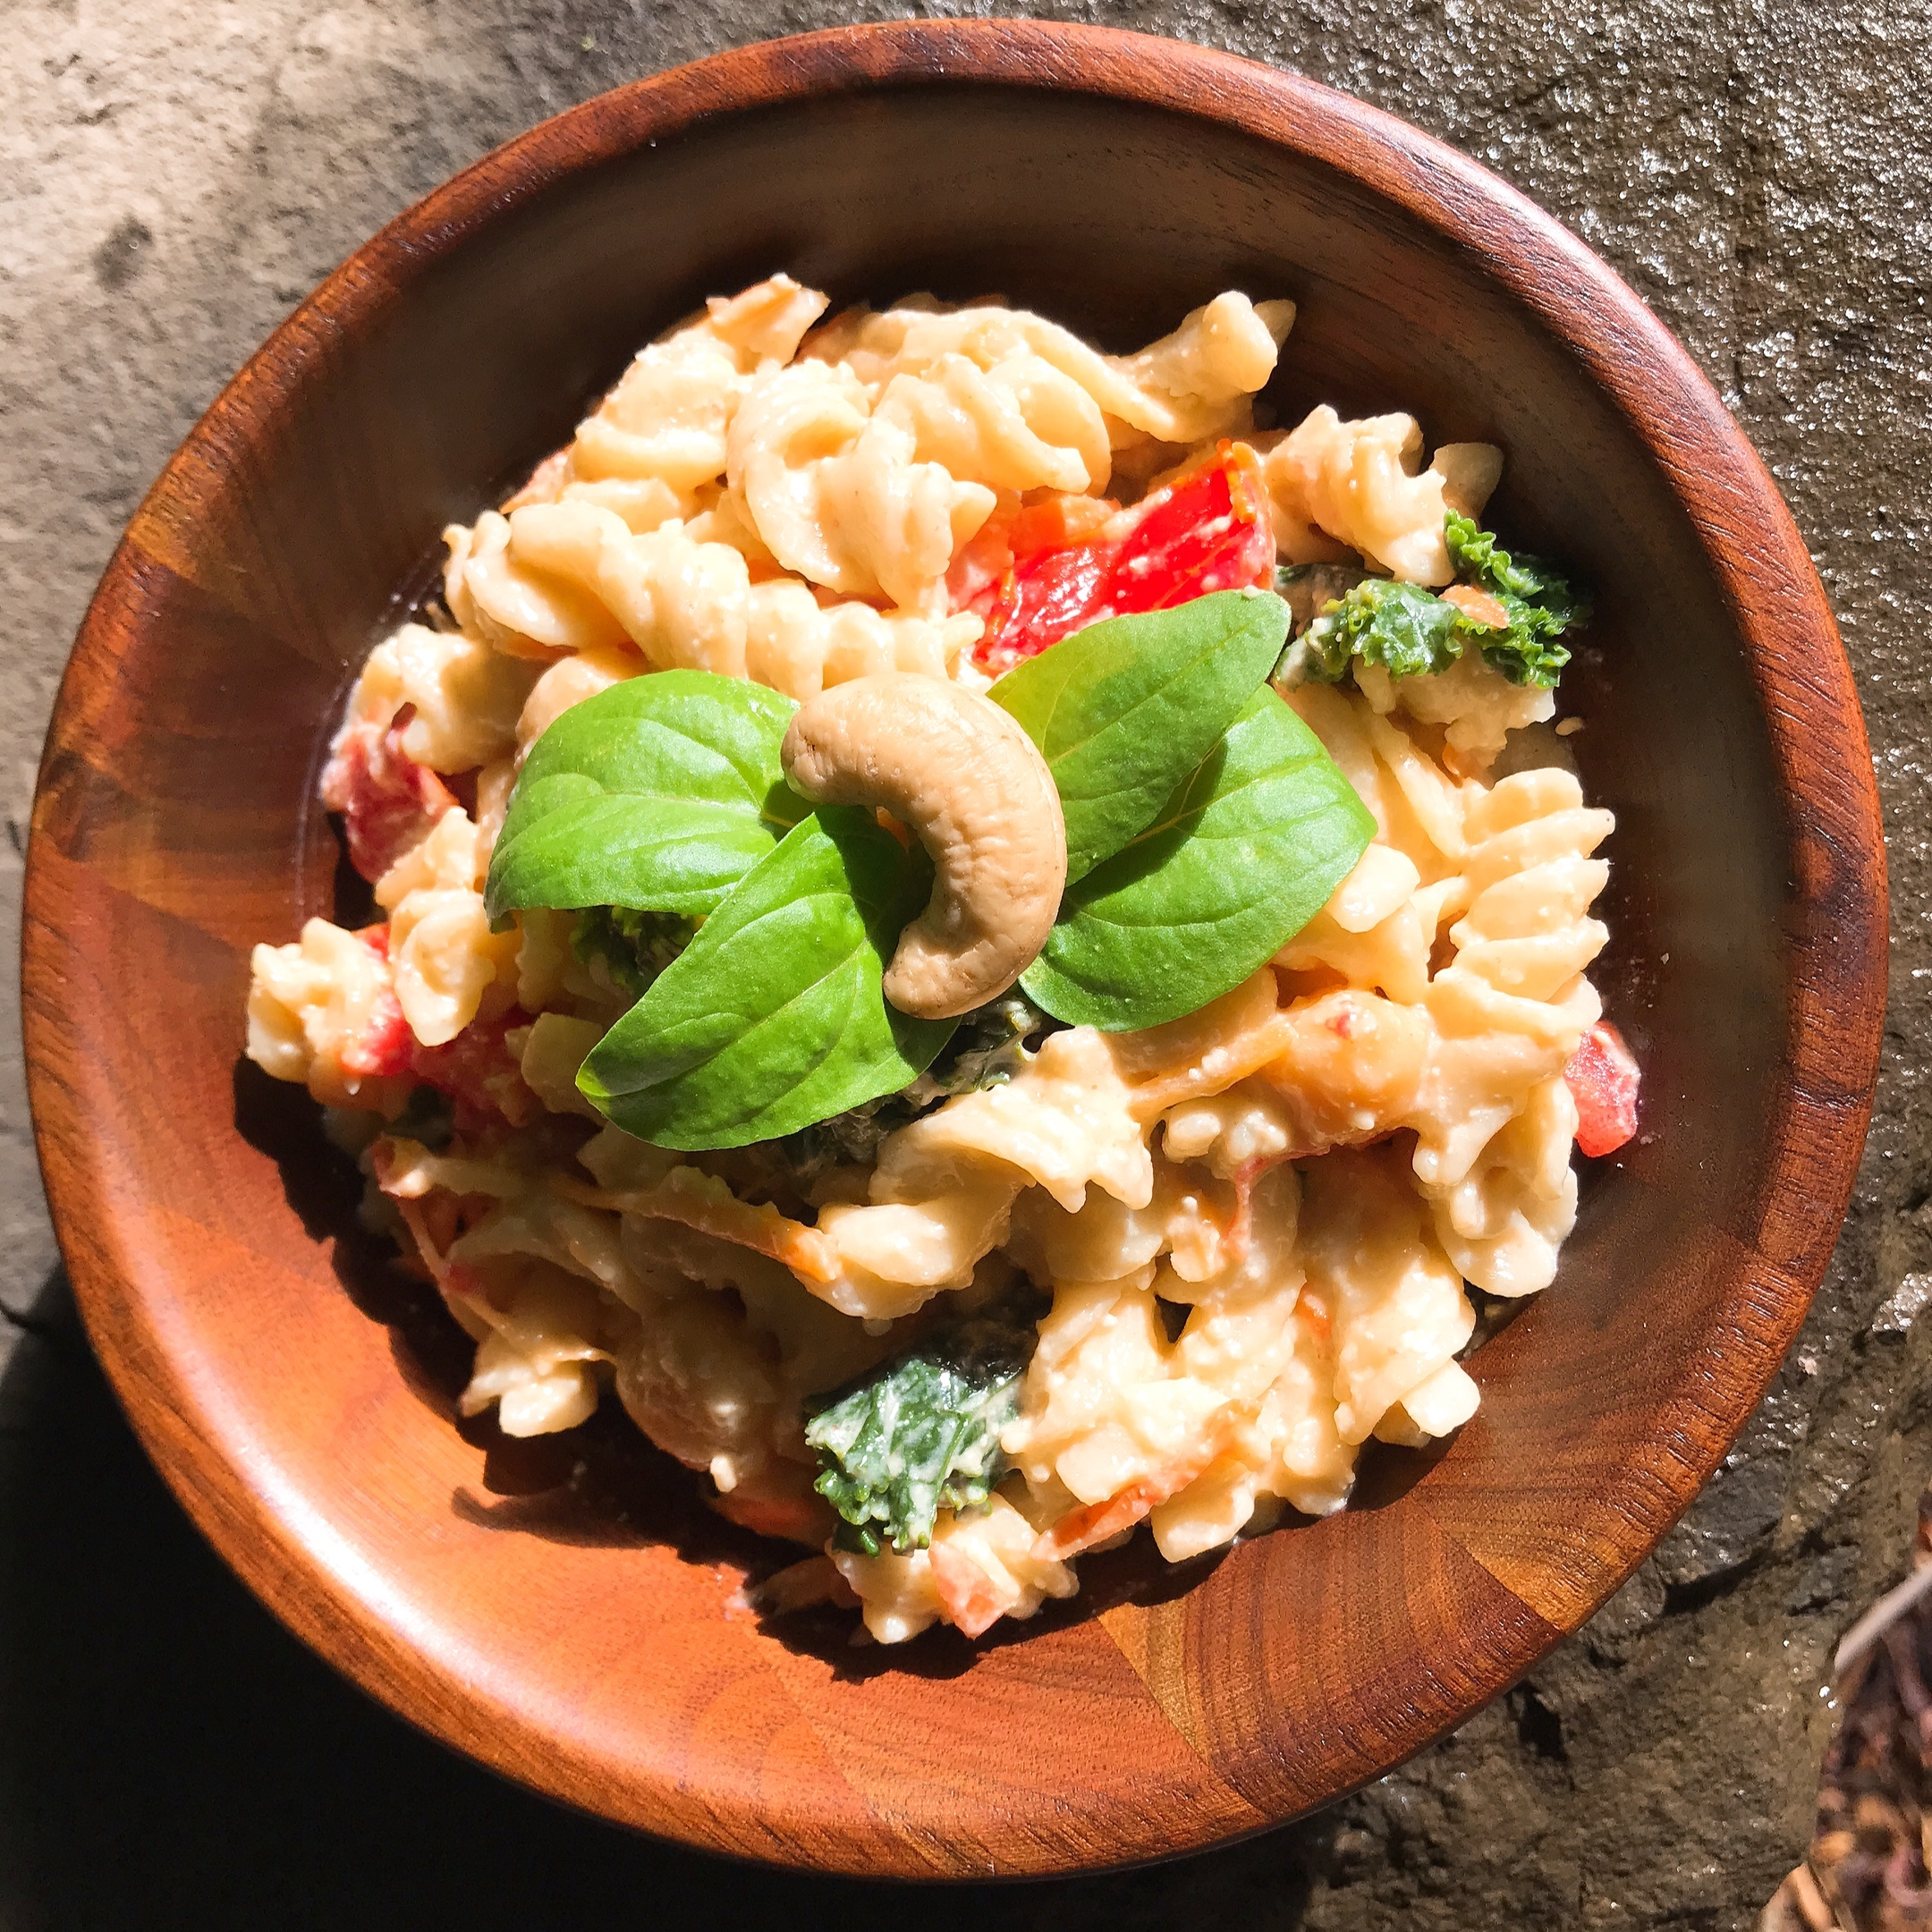 Cashew-kale-chickpea-vegan-macaroni-and-cheese